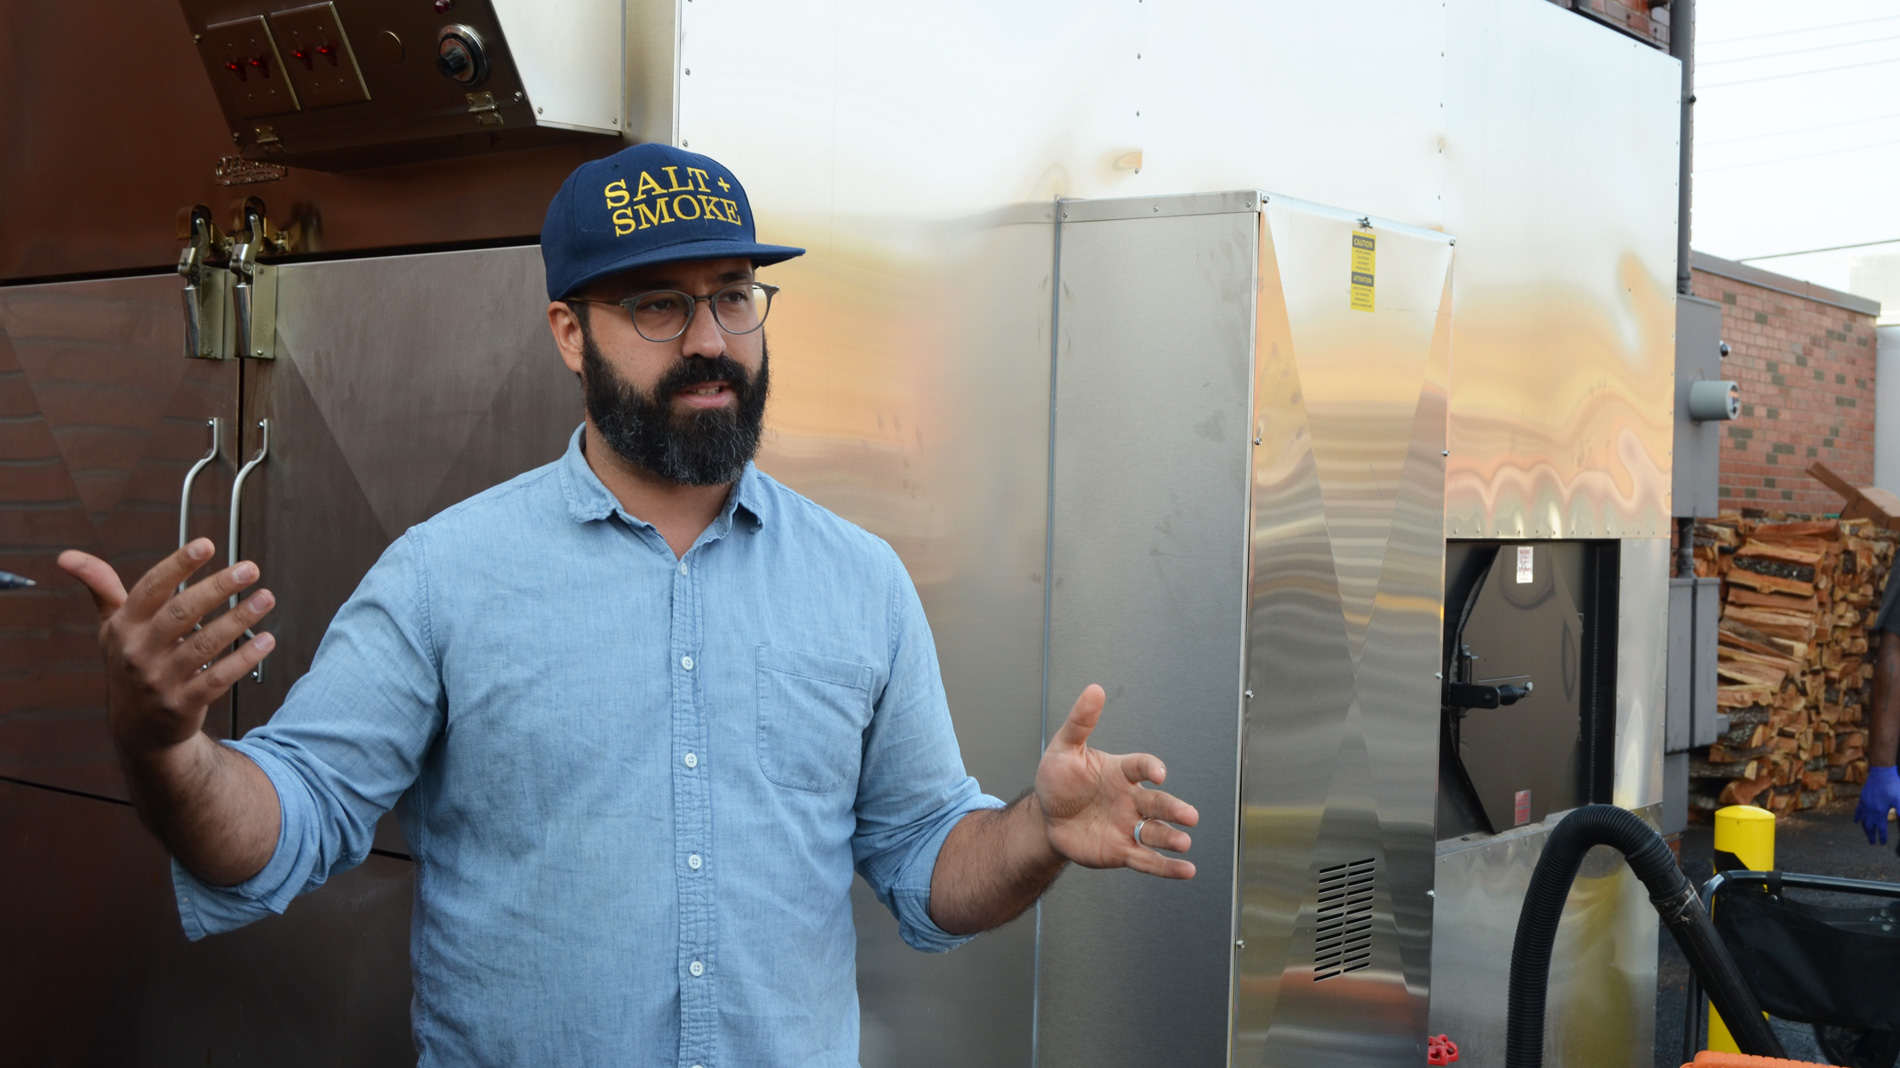 a bearded man in a baseball cap standing next to a barbecue smoker